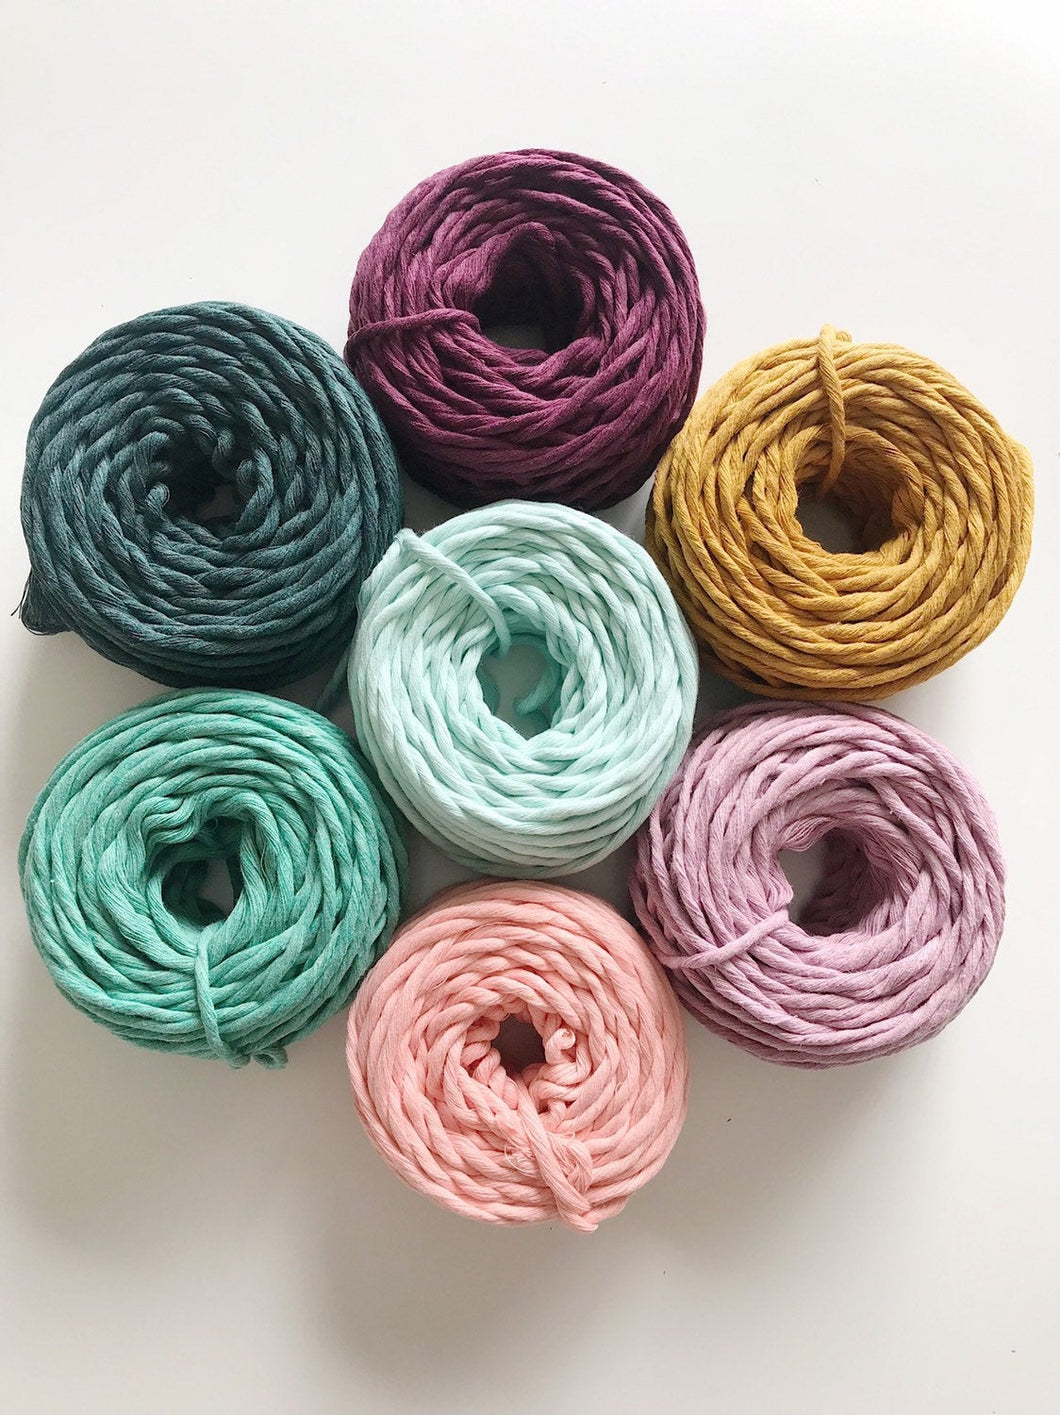 3mm - Single Strand Twisted 100% Cotton Cord